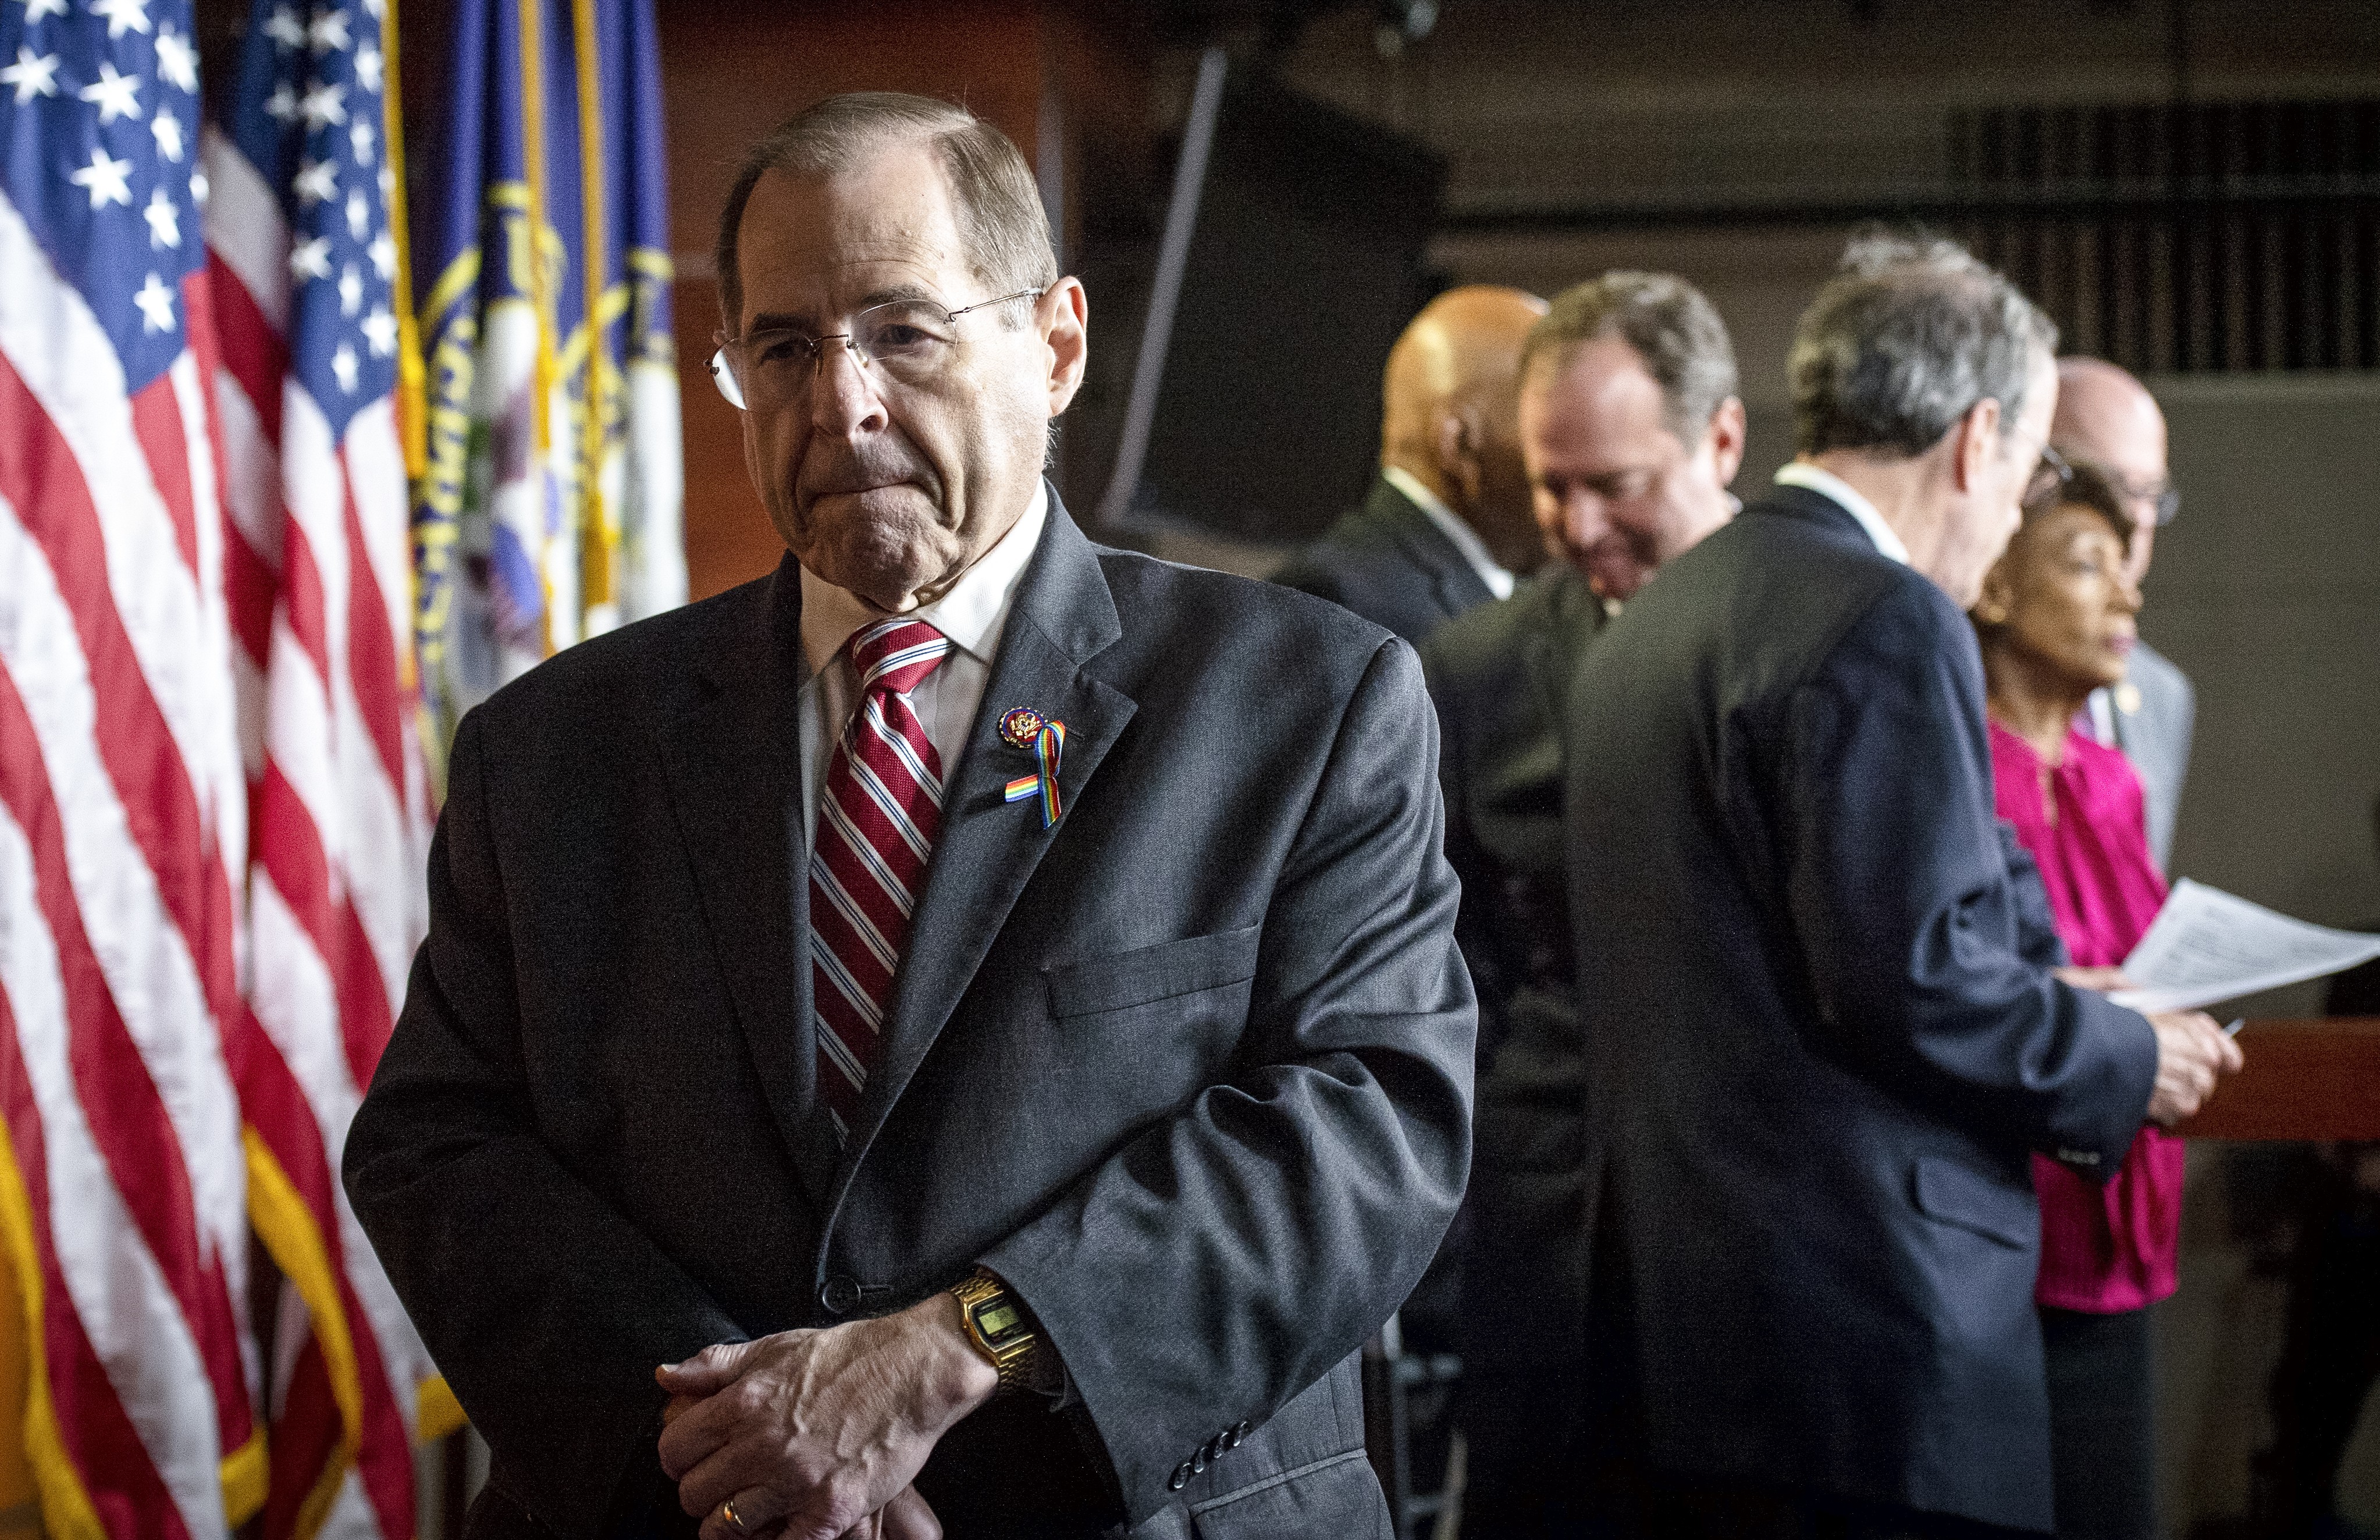 UNITED STATES - JUNE 11: House Judiciary Committee Chairman Jerrold Nadler, D-N.Y., departs after speaking at a news conference in the Capitol in Washington on Tuesday June 11, 2019. (Photo by Caroline Brehman/CQ Roll Call)